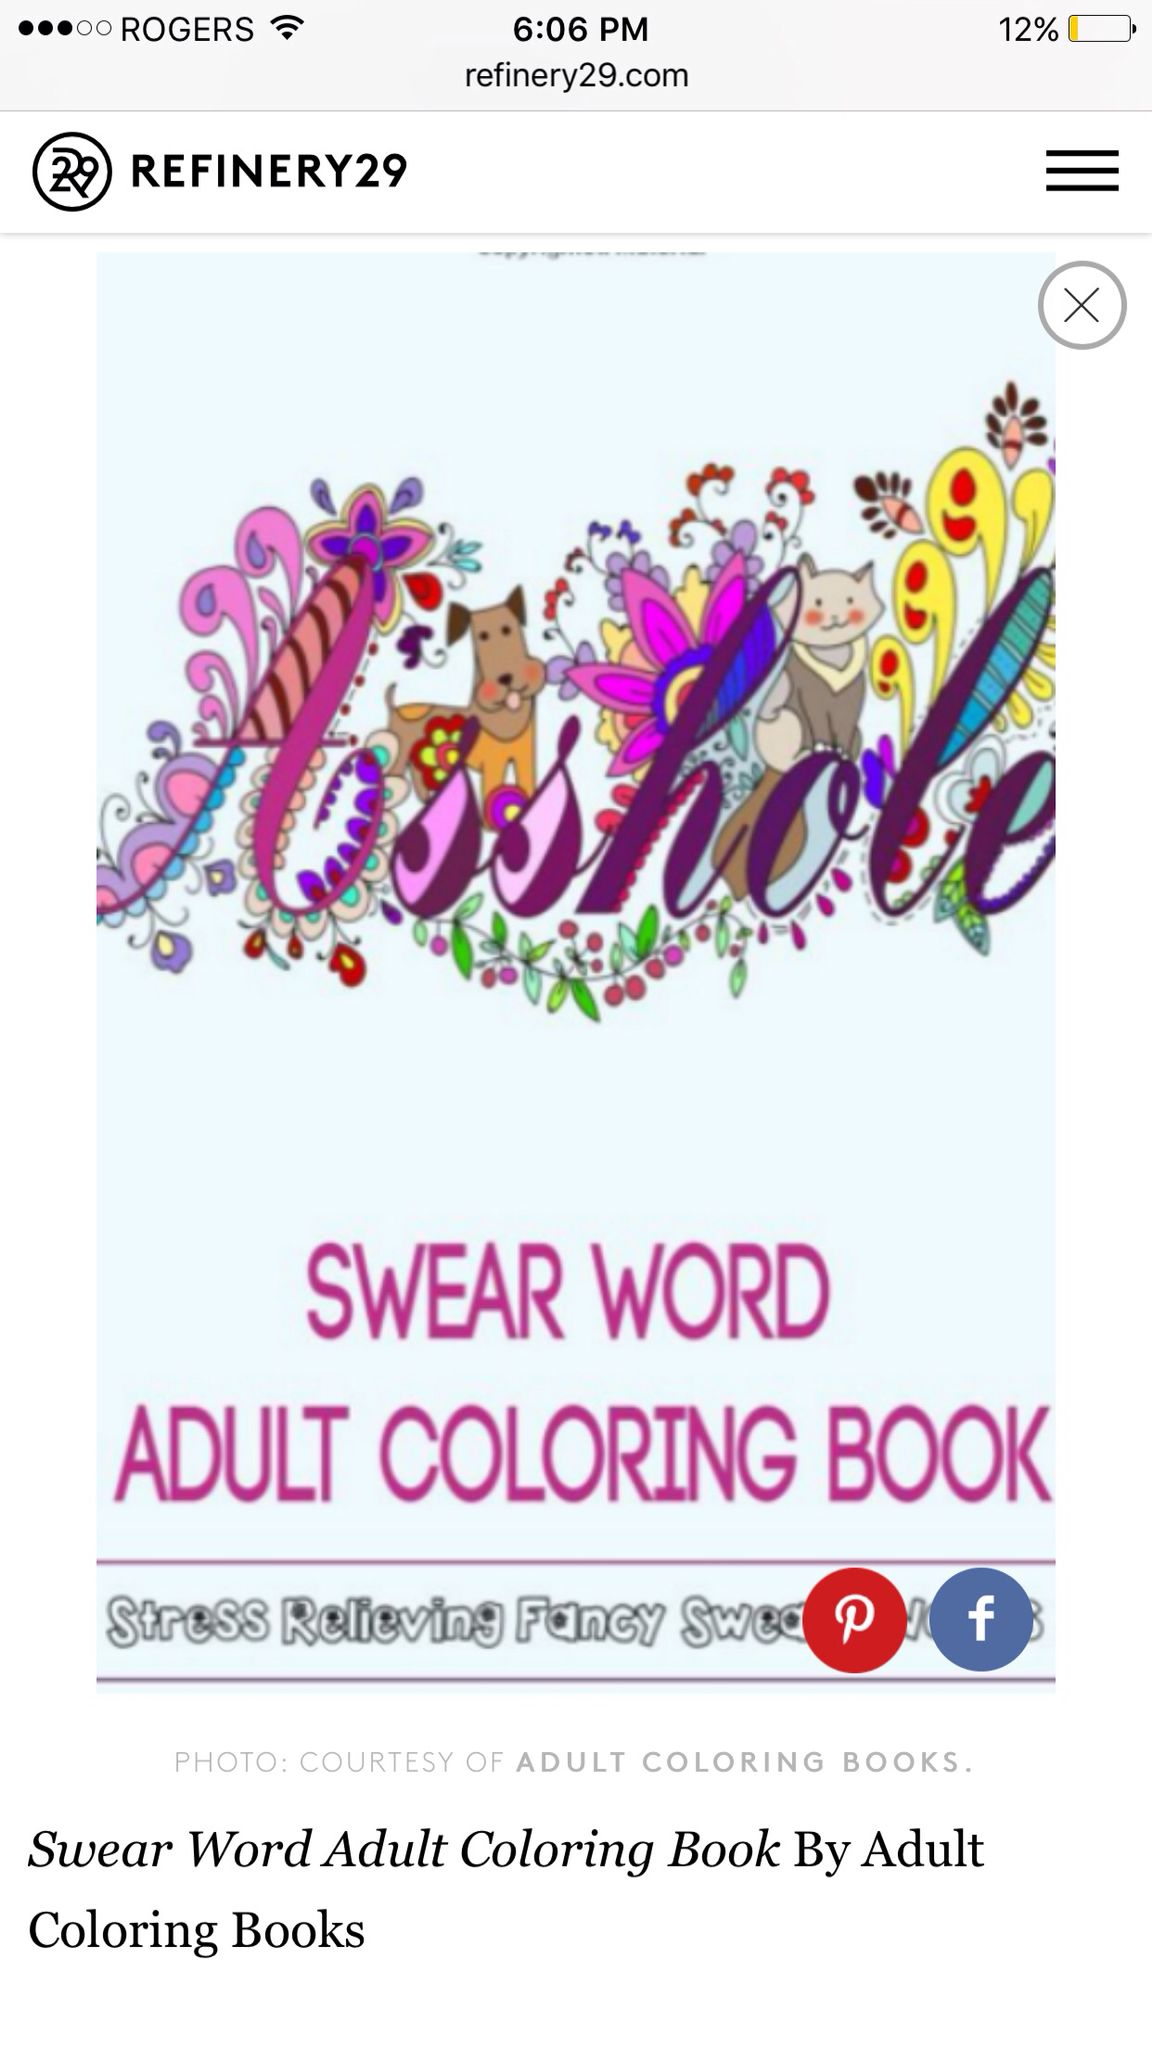 Fancy swear words coloring book - Adult Colouring Book